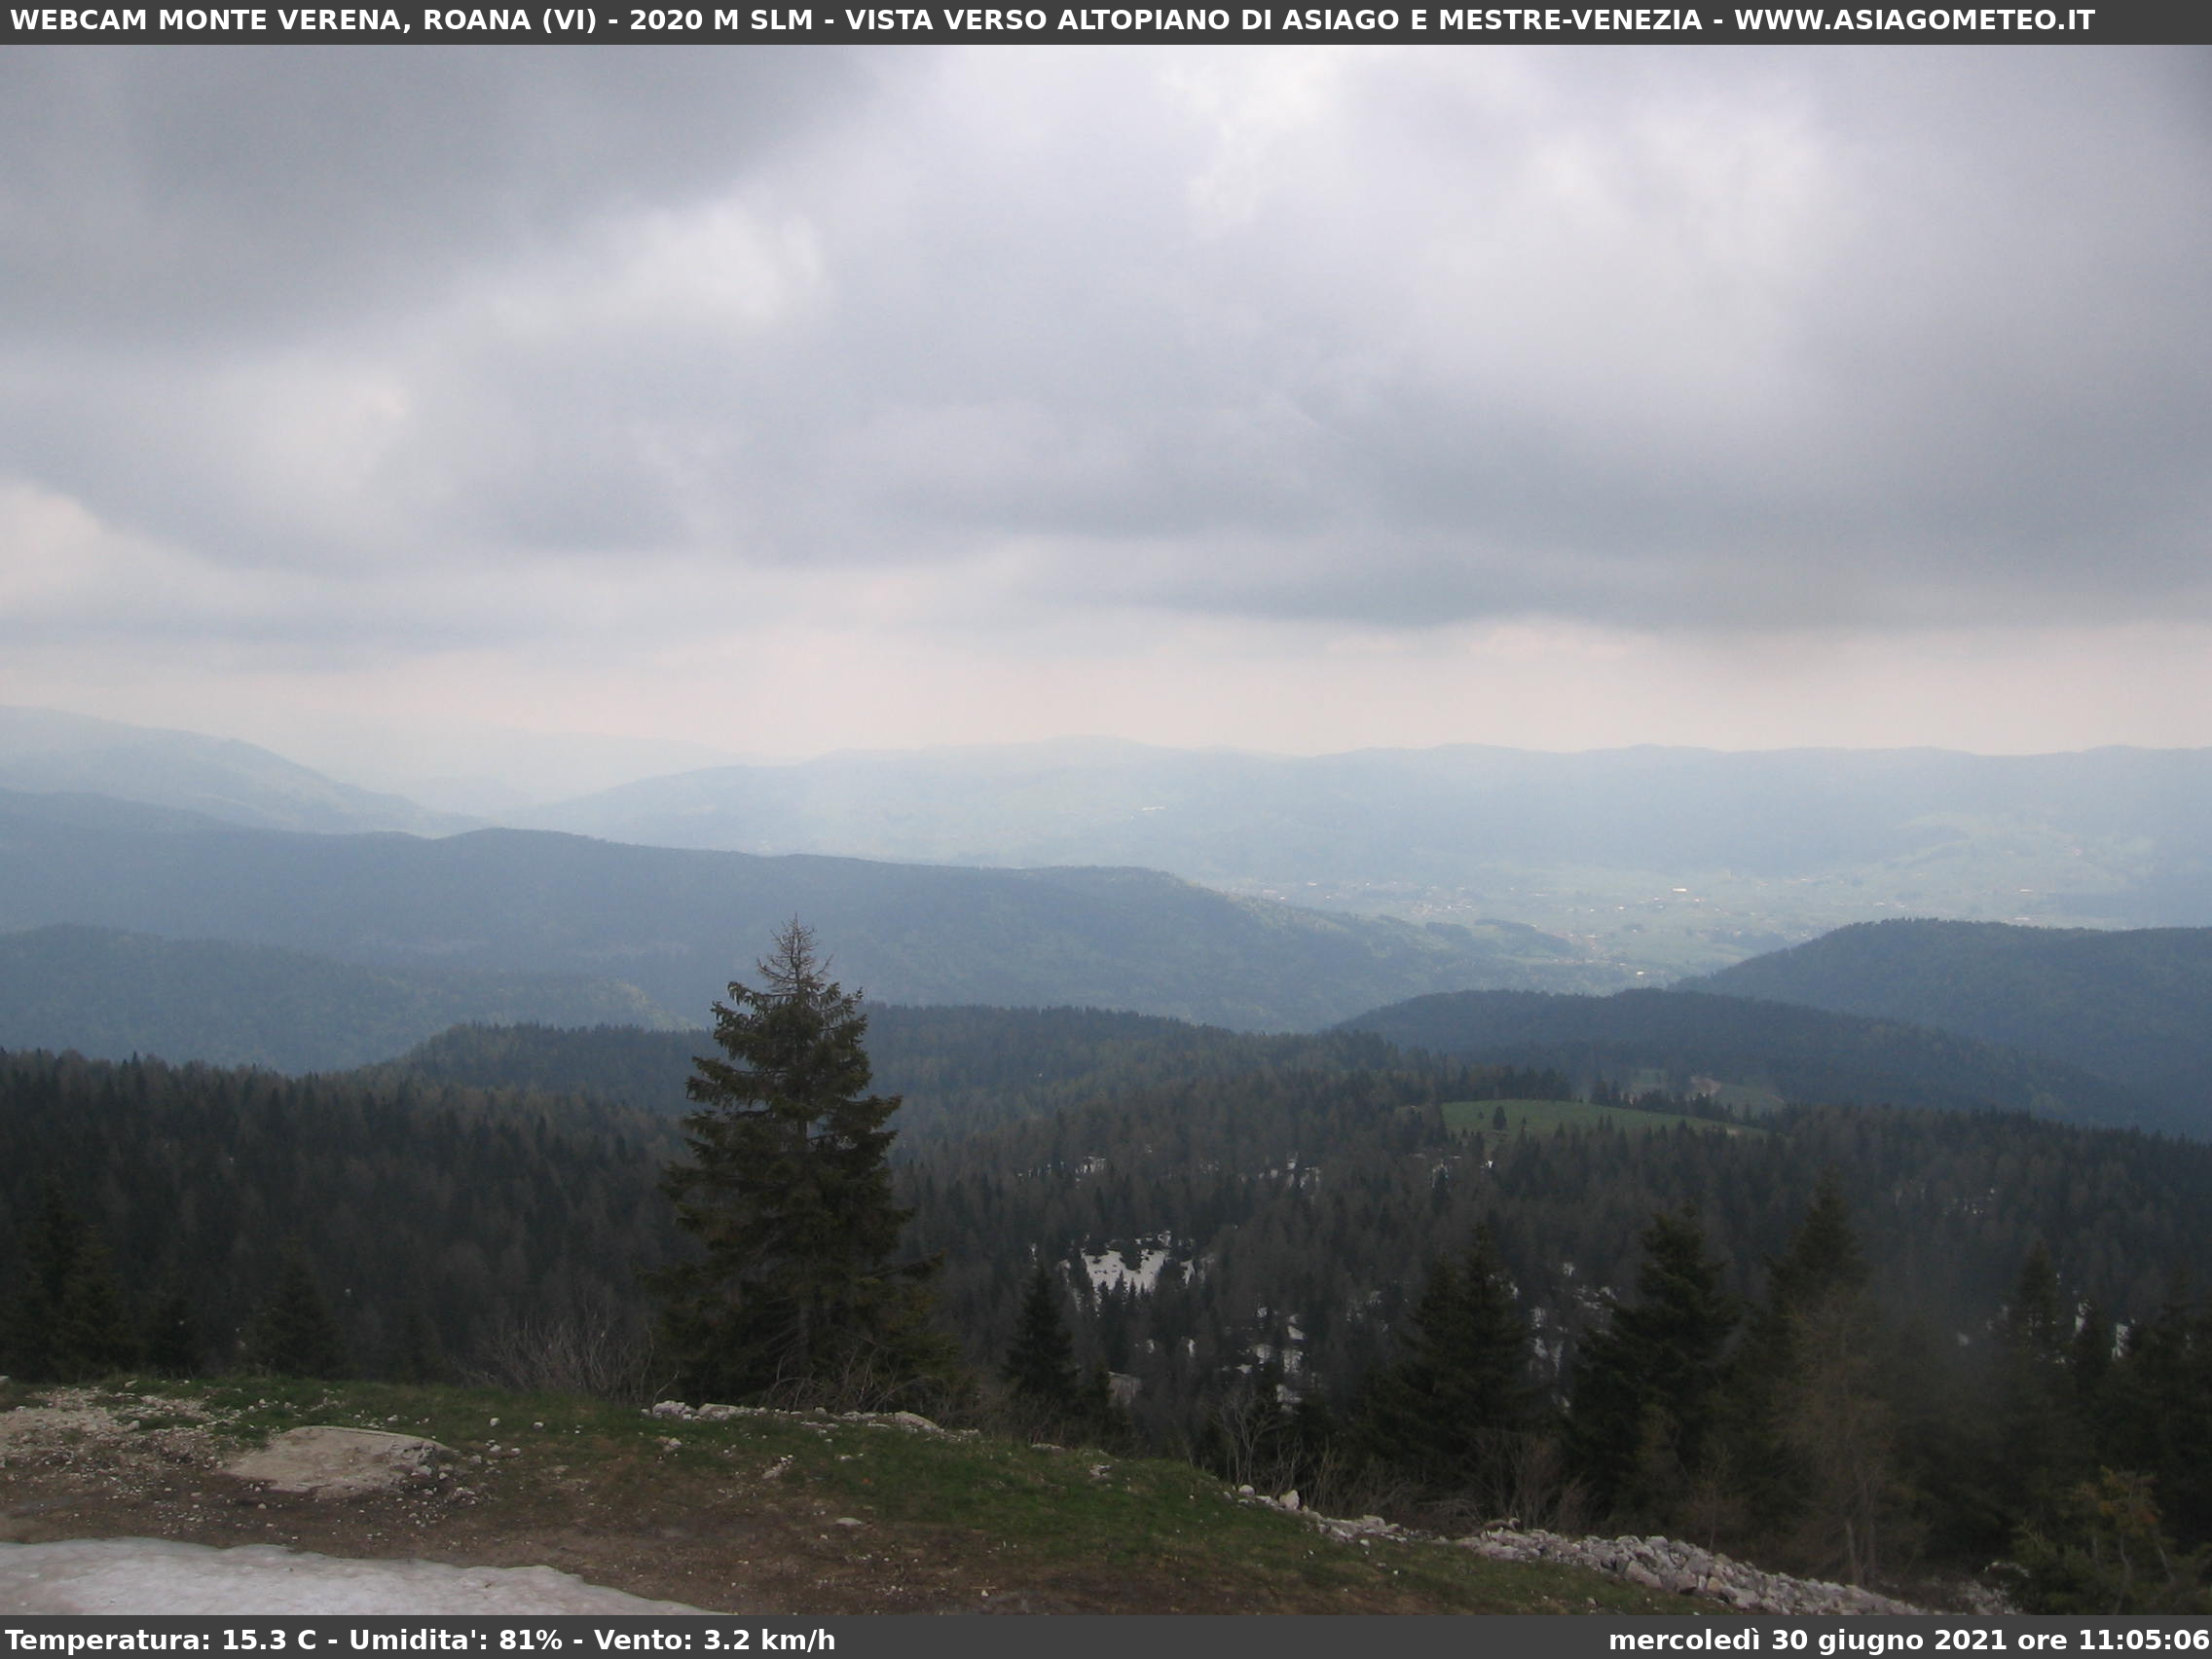 Monte Verena webcam 2